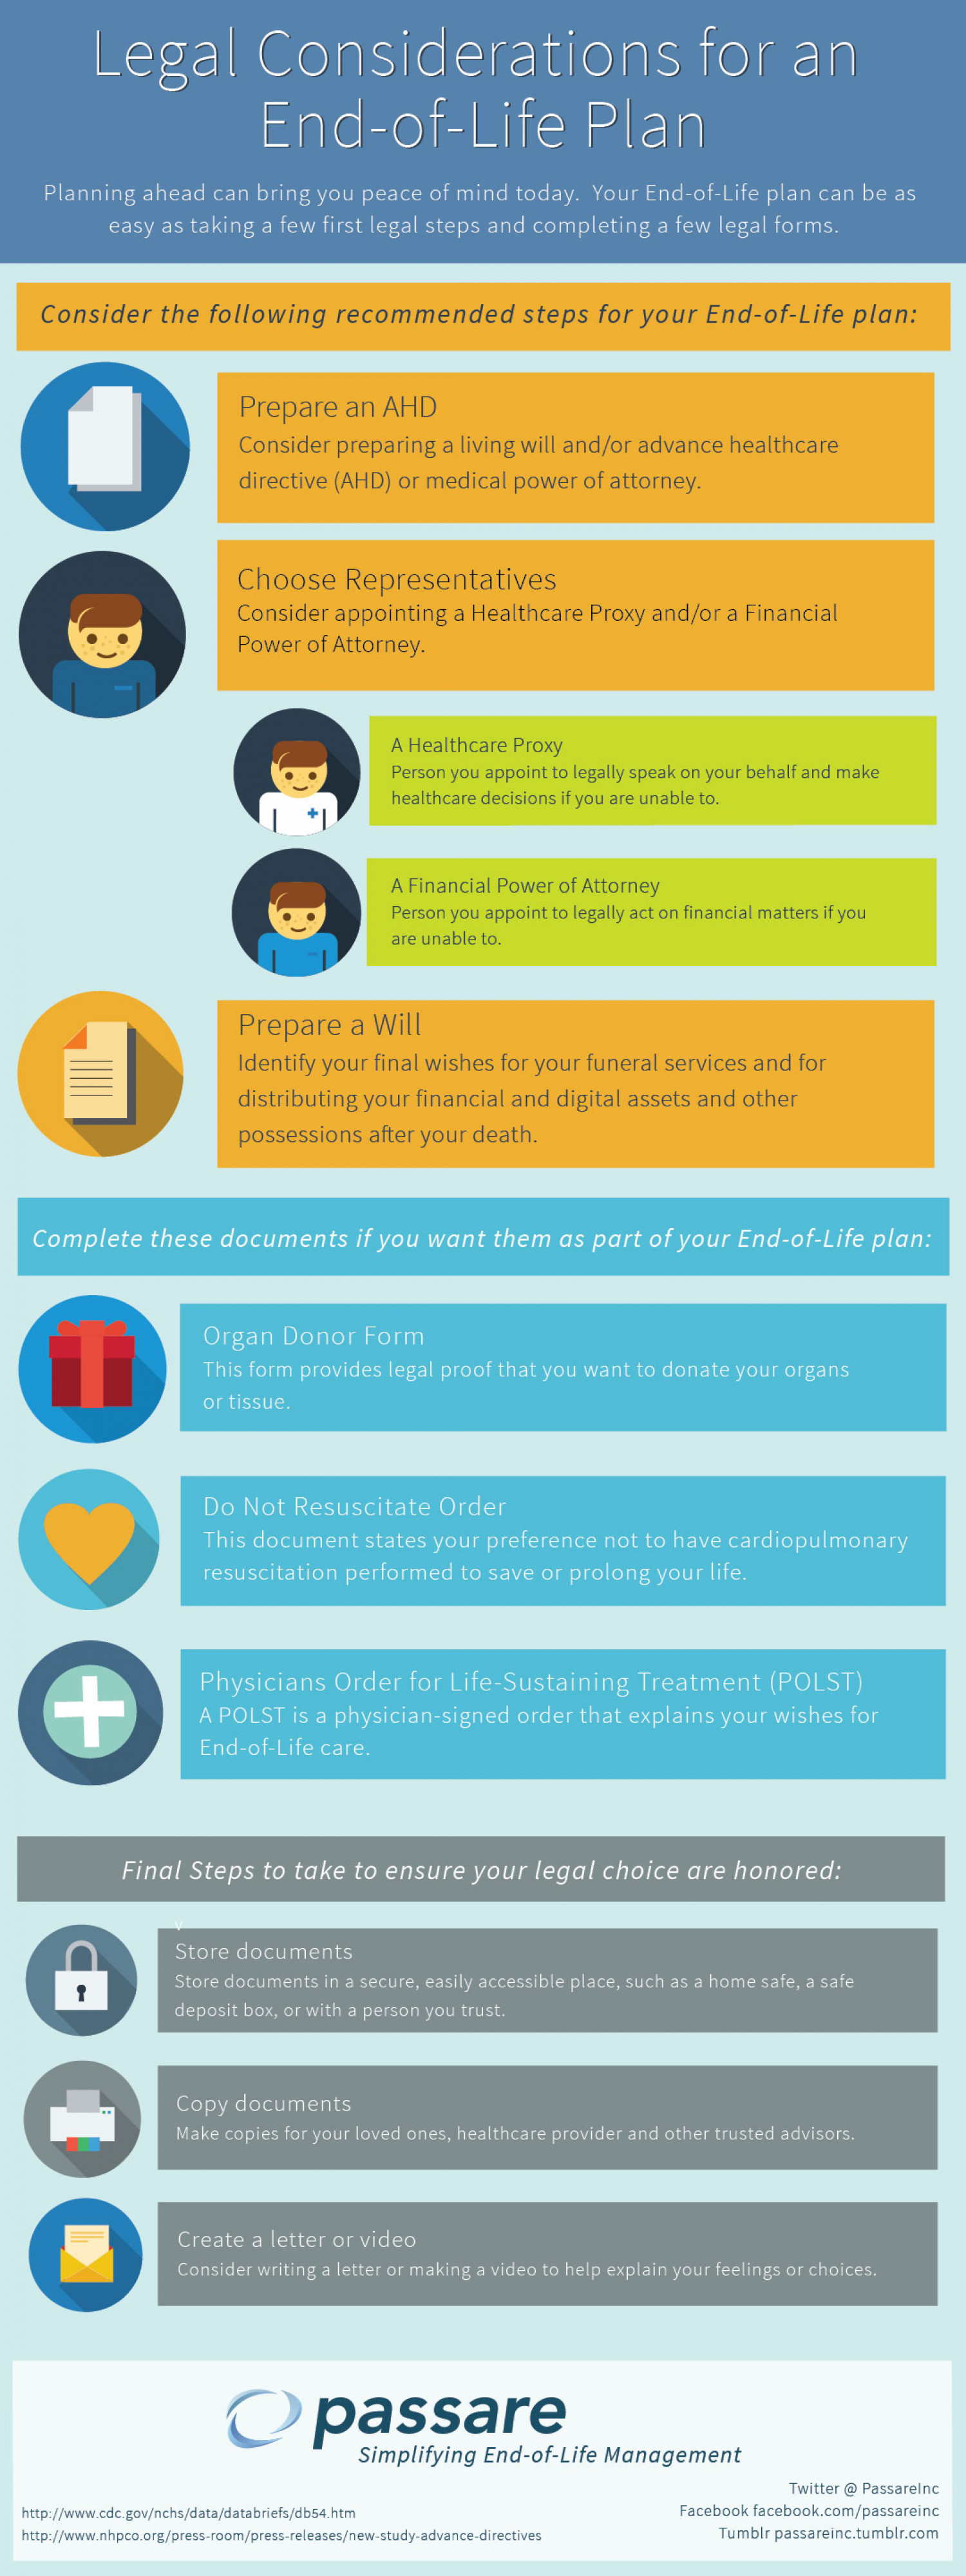 Legal Considerations for an End-of-Life Plan Infographic